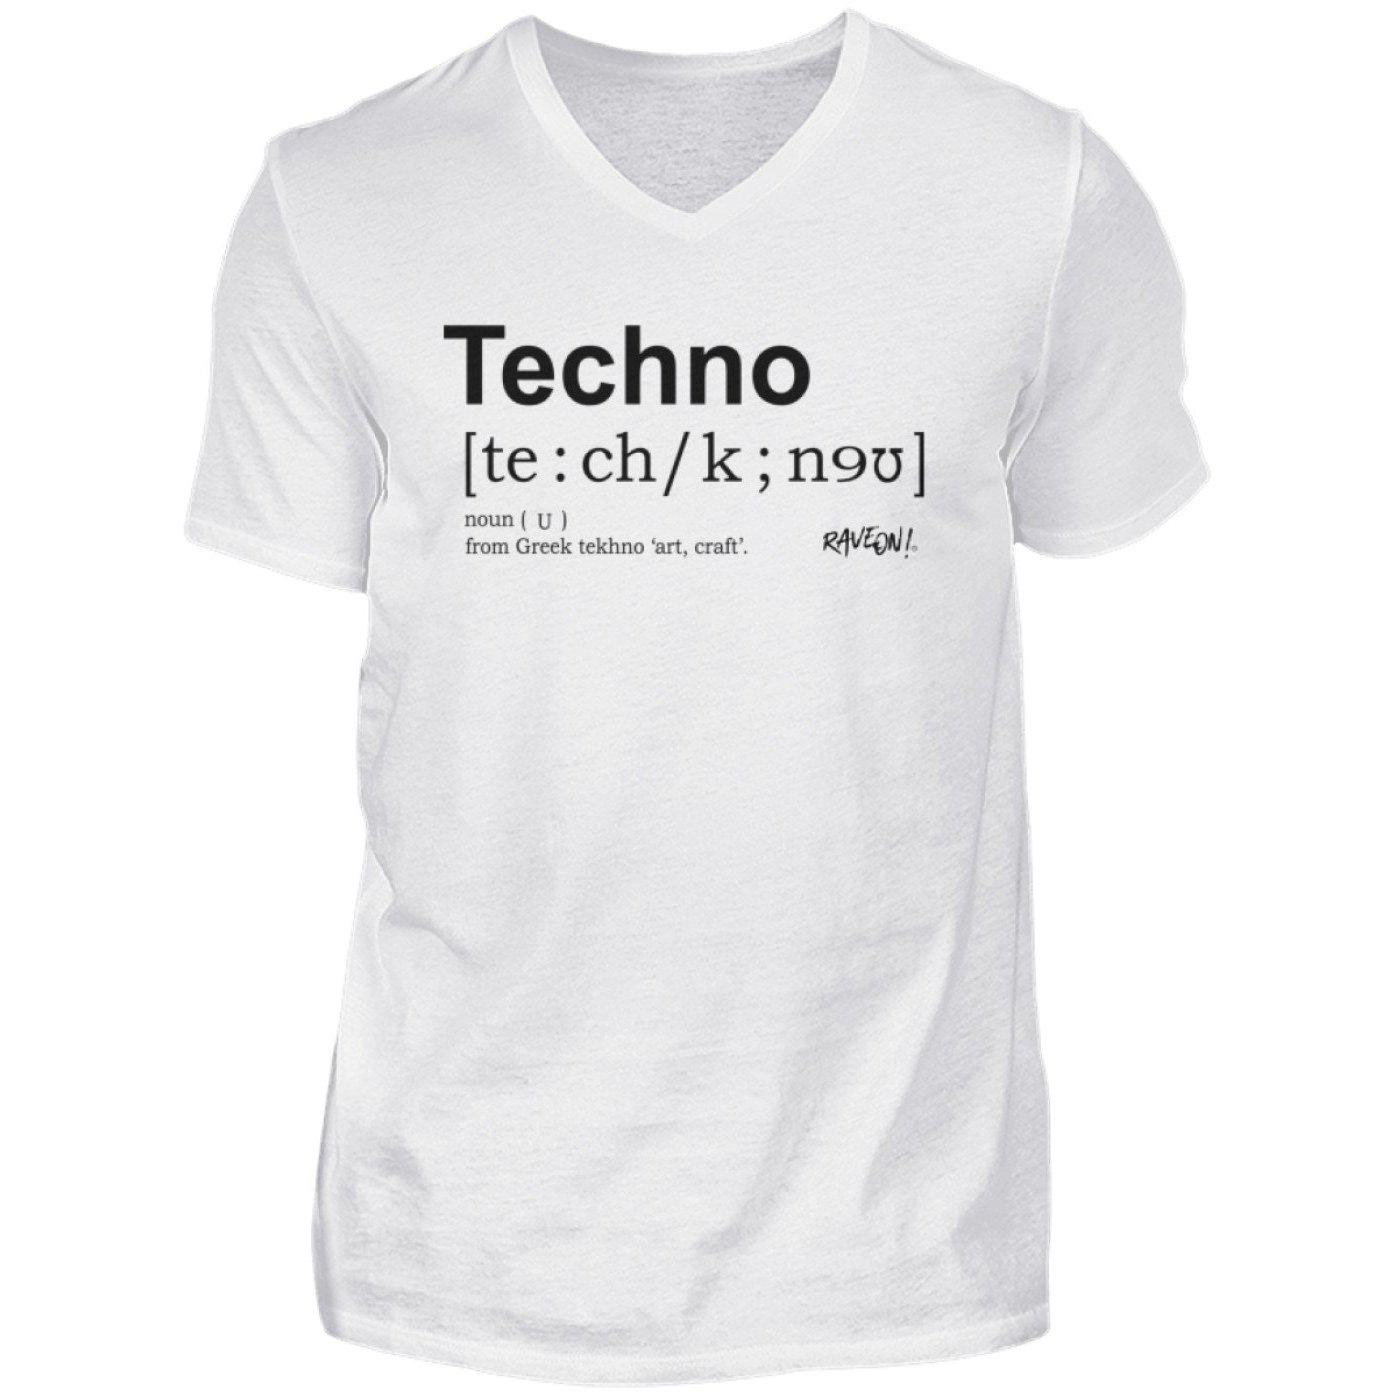 Techno Dictionary - Rave On!® Shirt - Herren V-Neck Shirt V-Neck Herrenshirt White / S - Rave On!® der Club & Techno Szene Shop für Coole Junge Mode Streetwear Style & Fashion Outfits + Sexy Festival 420 Stuff